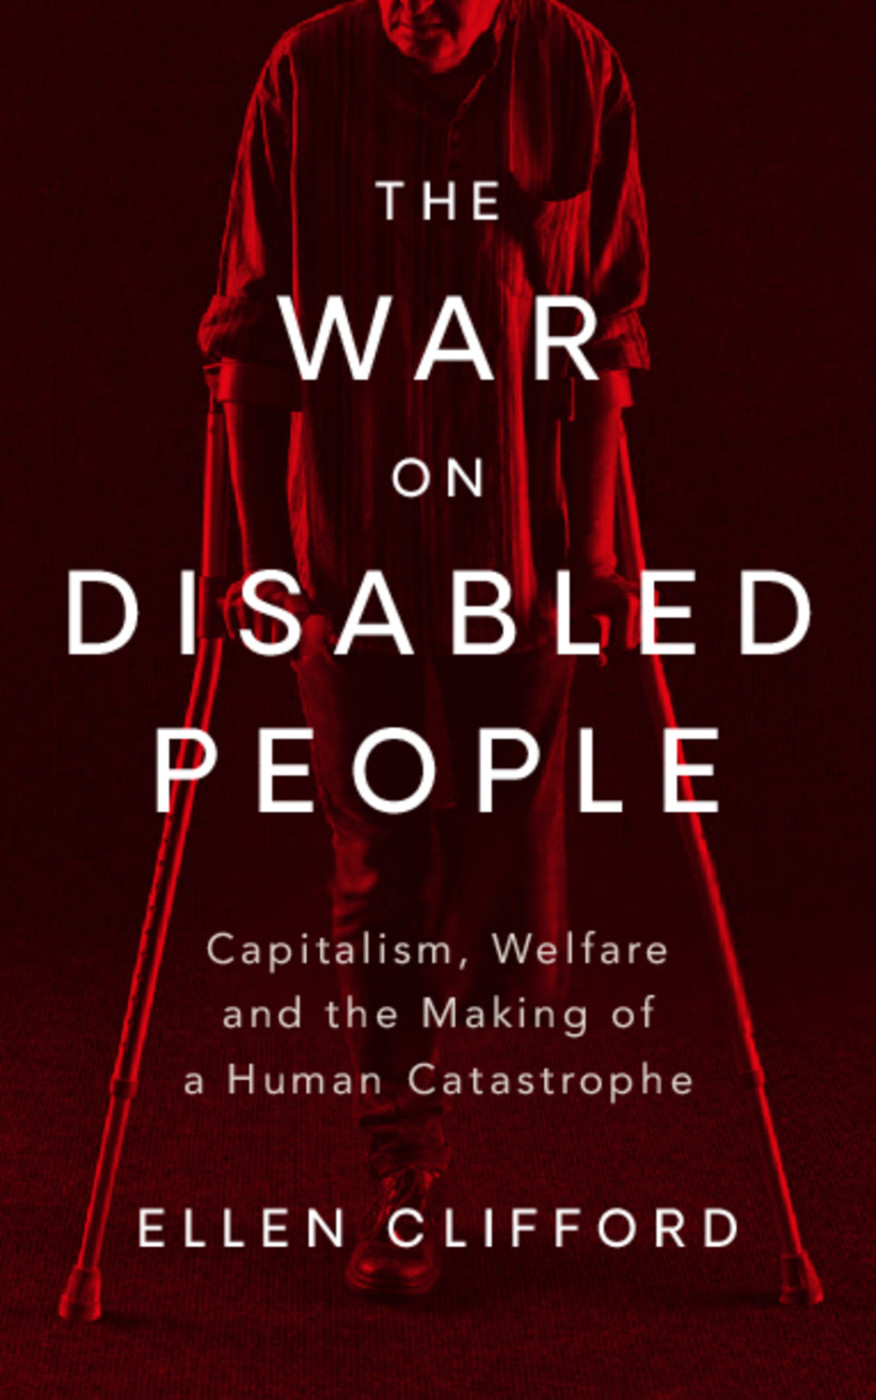 Book Review – The War on Disabled People